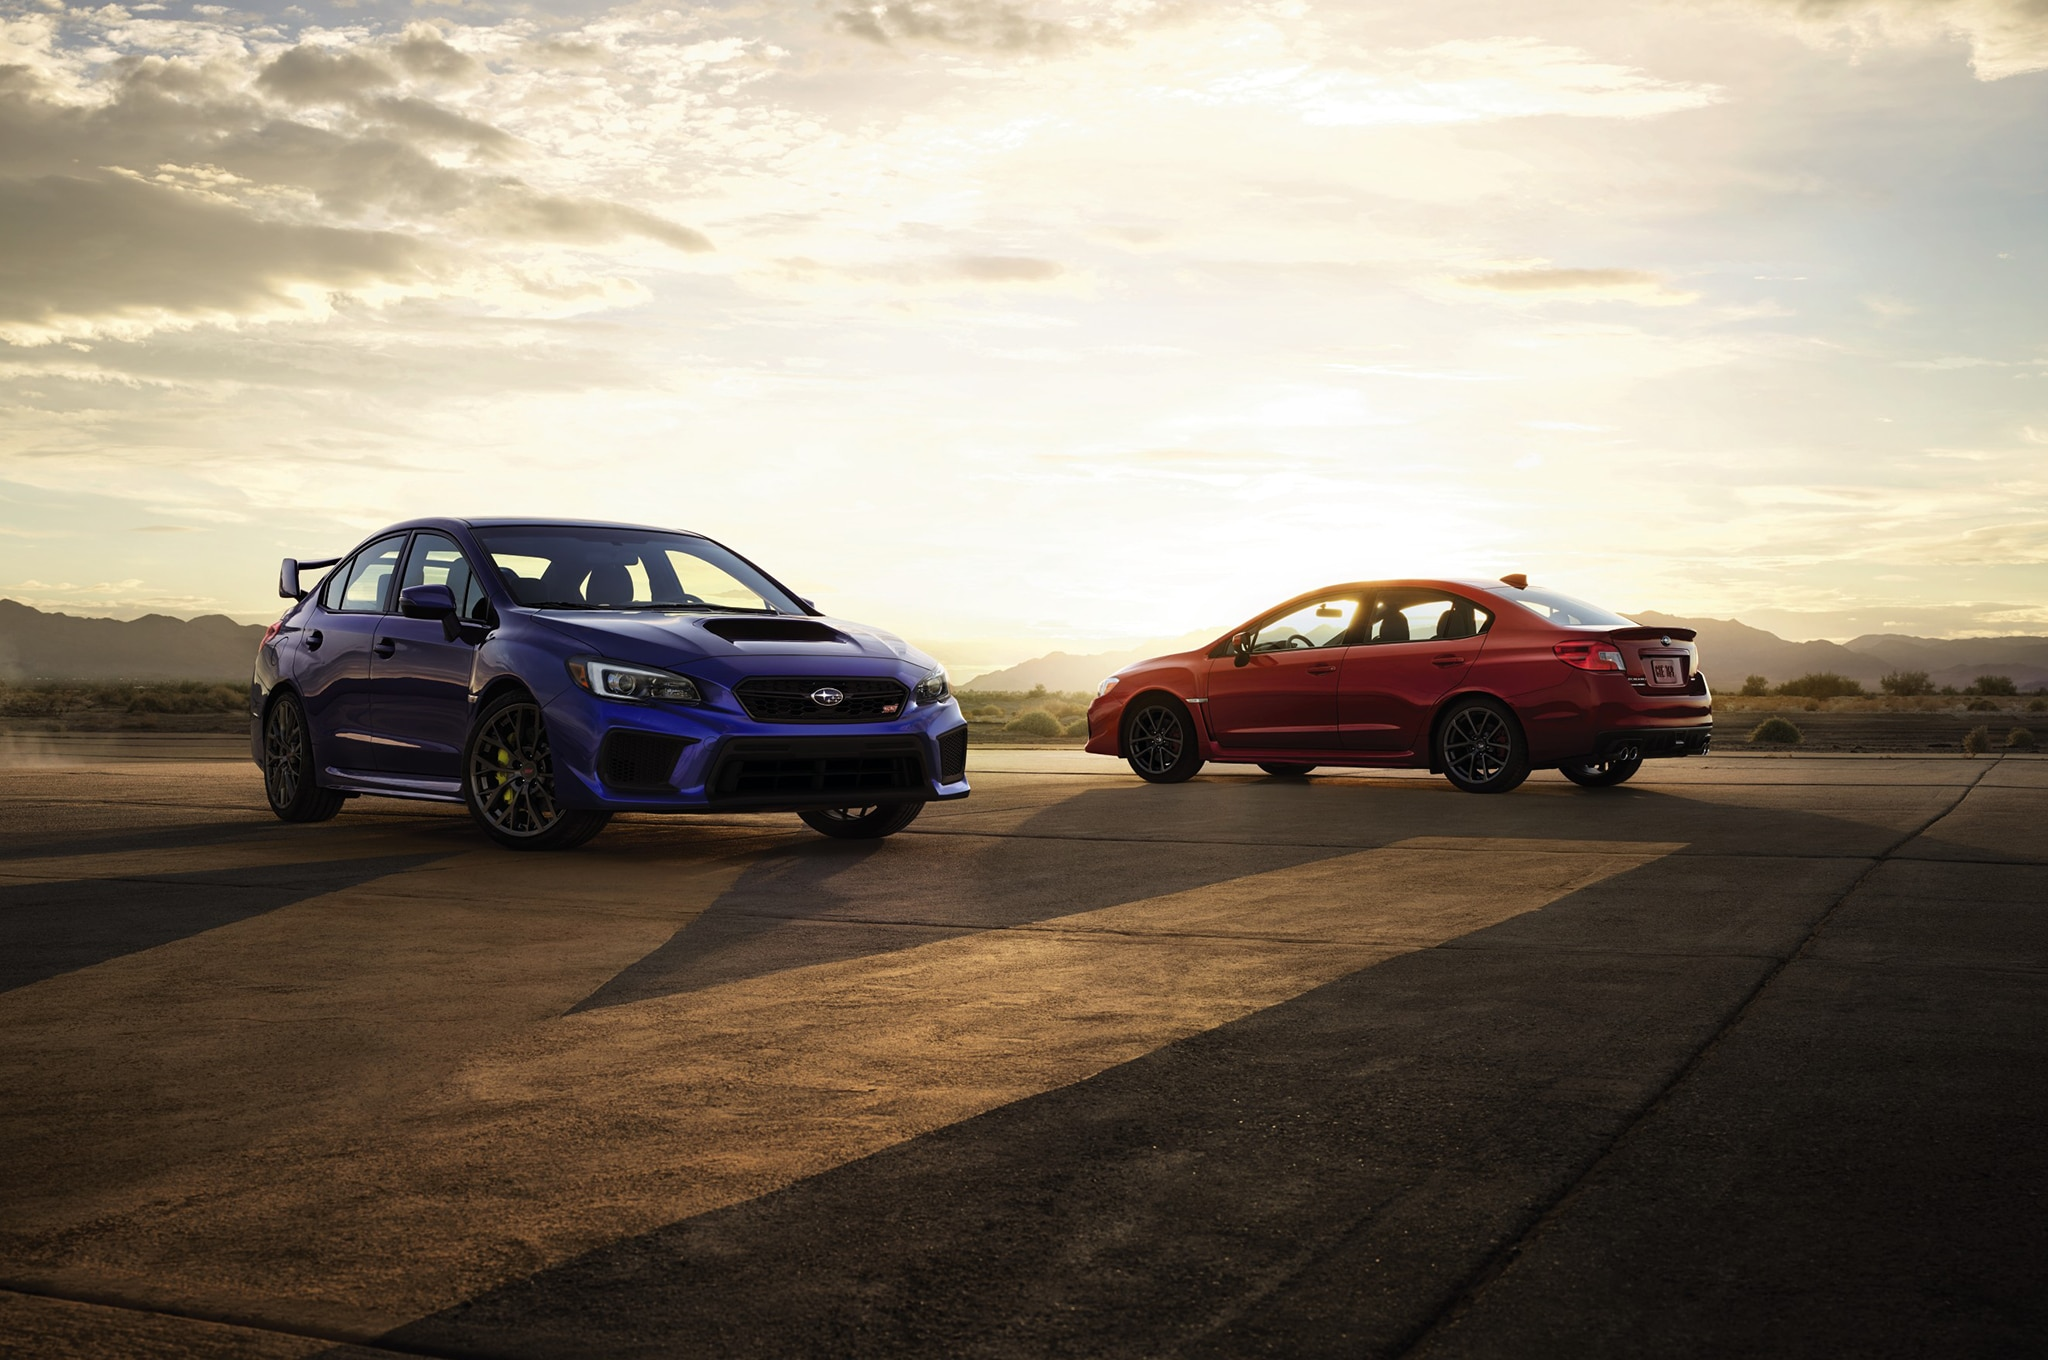 2018-Subaru-WRX-and-Subaru-WRX-STI-Together-1